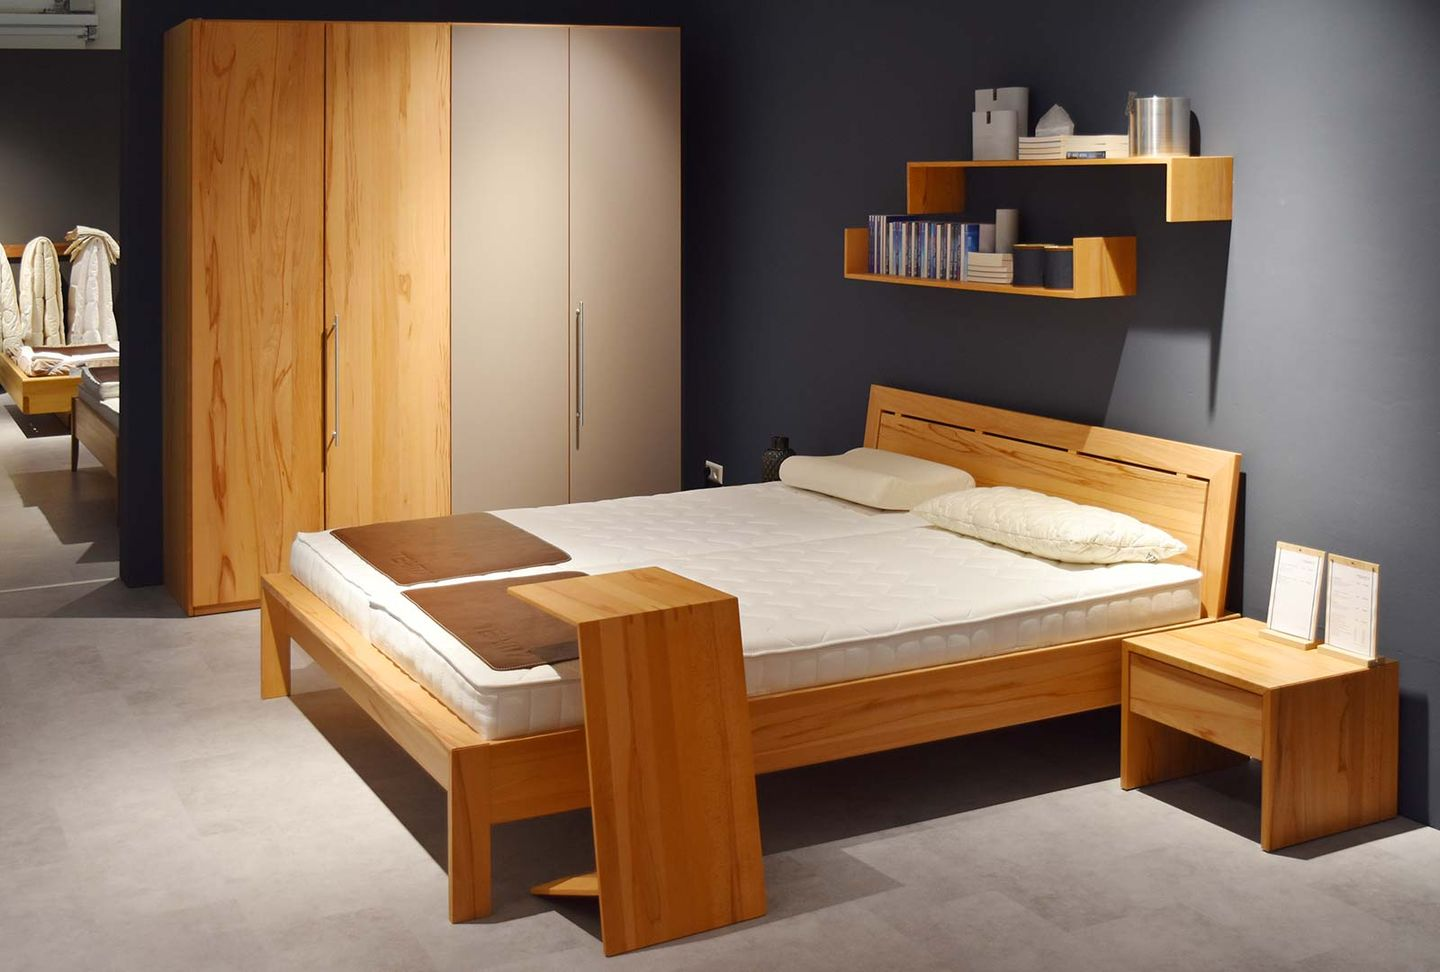 lunetto solid wood bed at TEAM 7 store Stuttgart